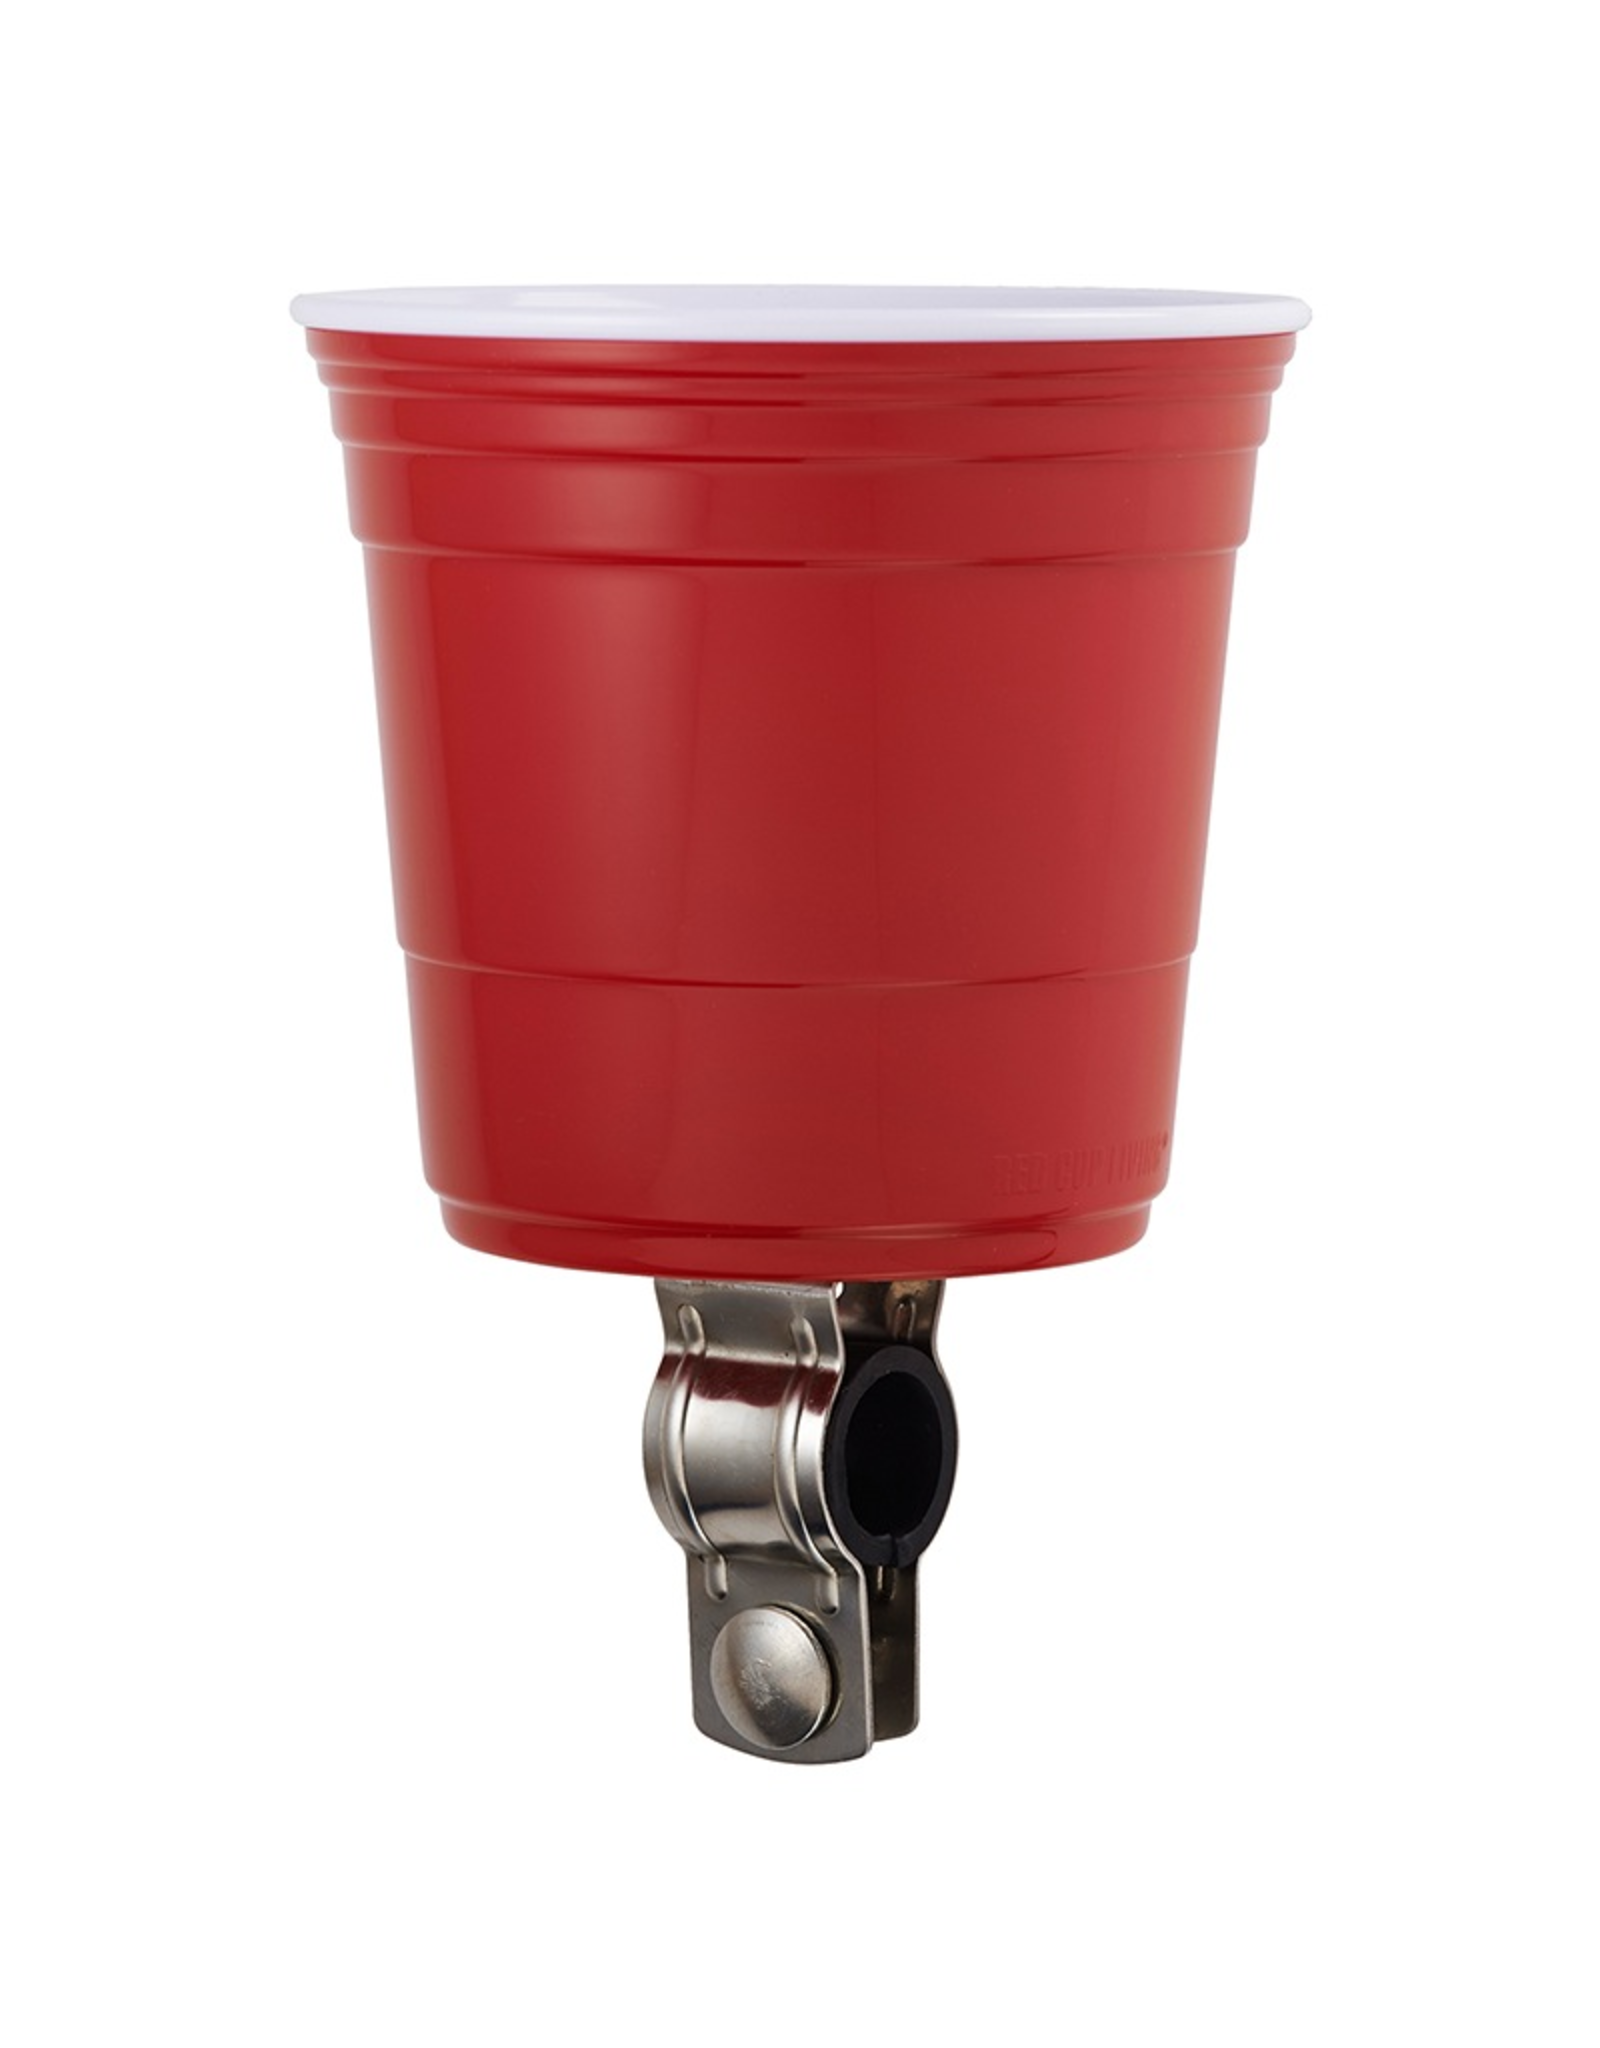 J & B Importers Solo Cup Drink Holder - Red